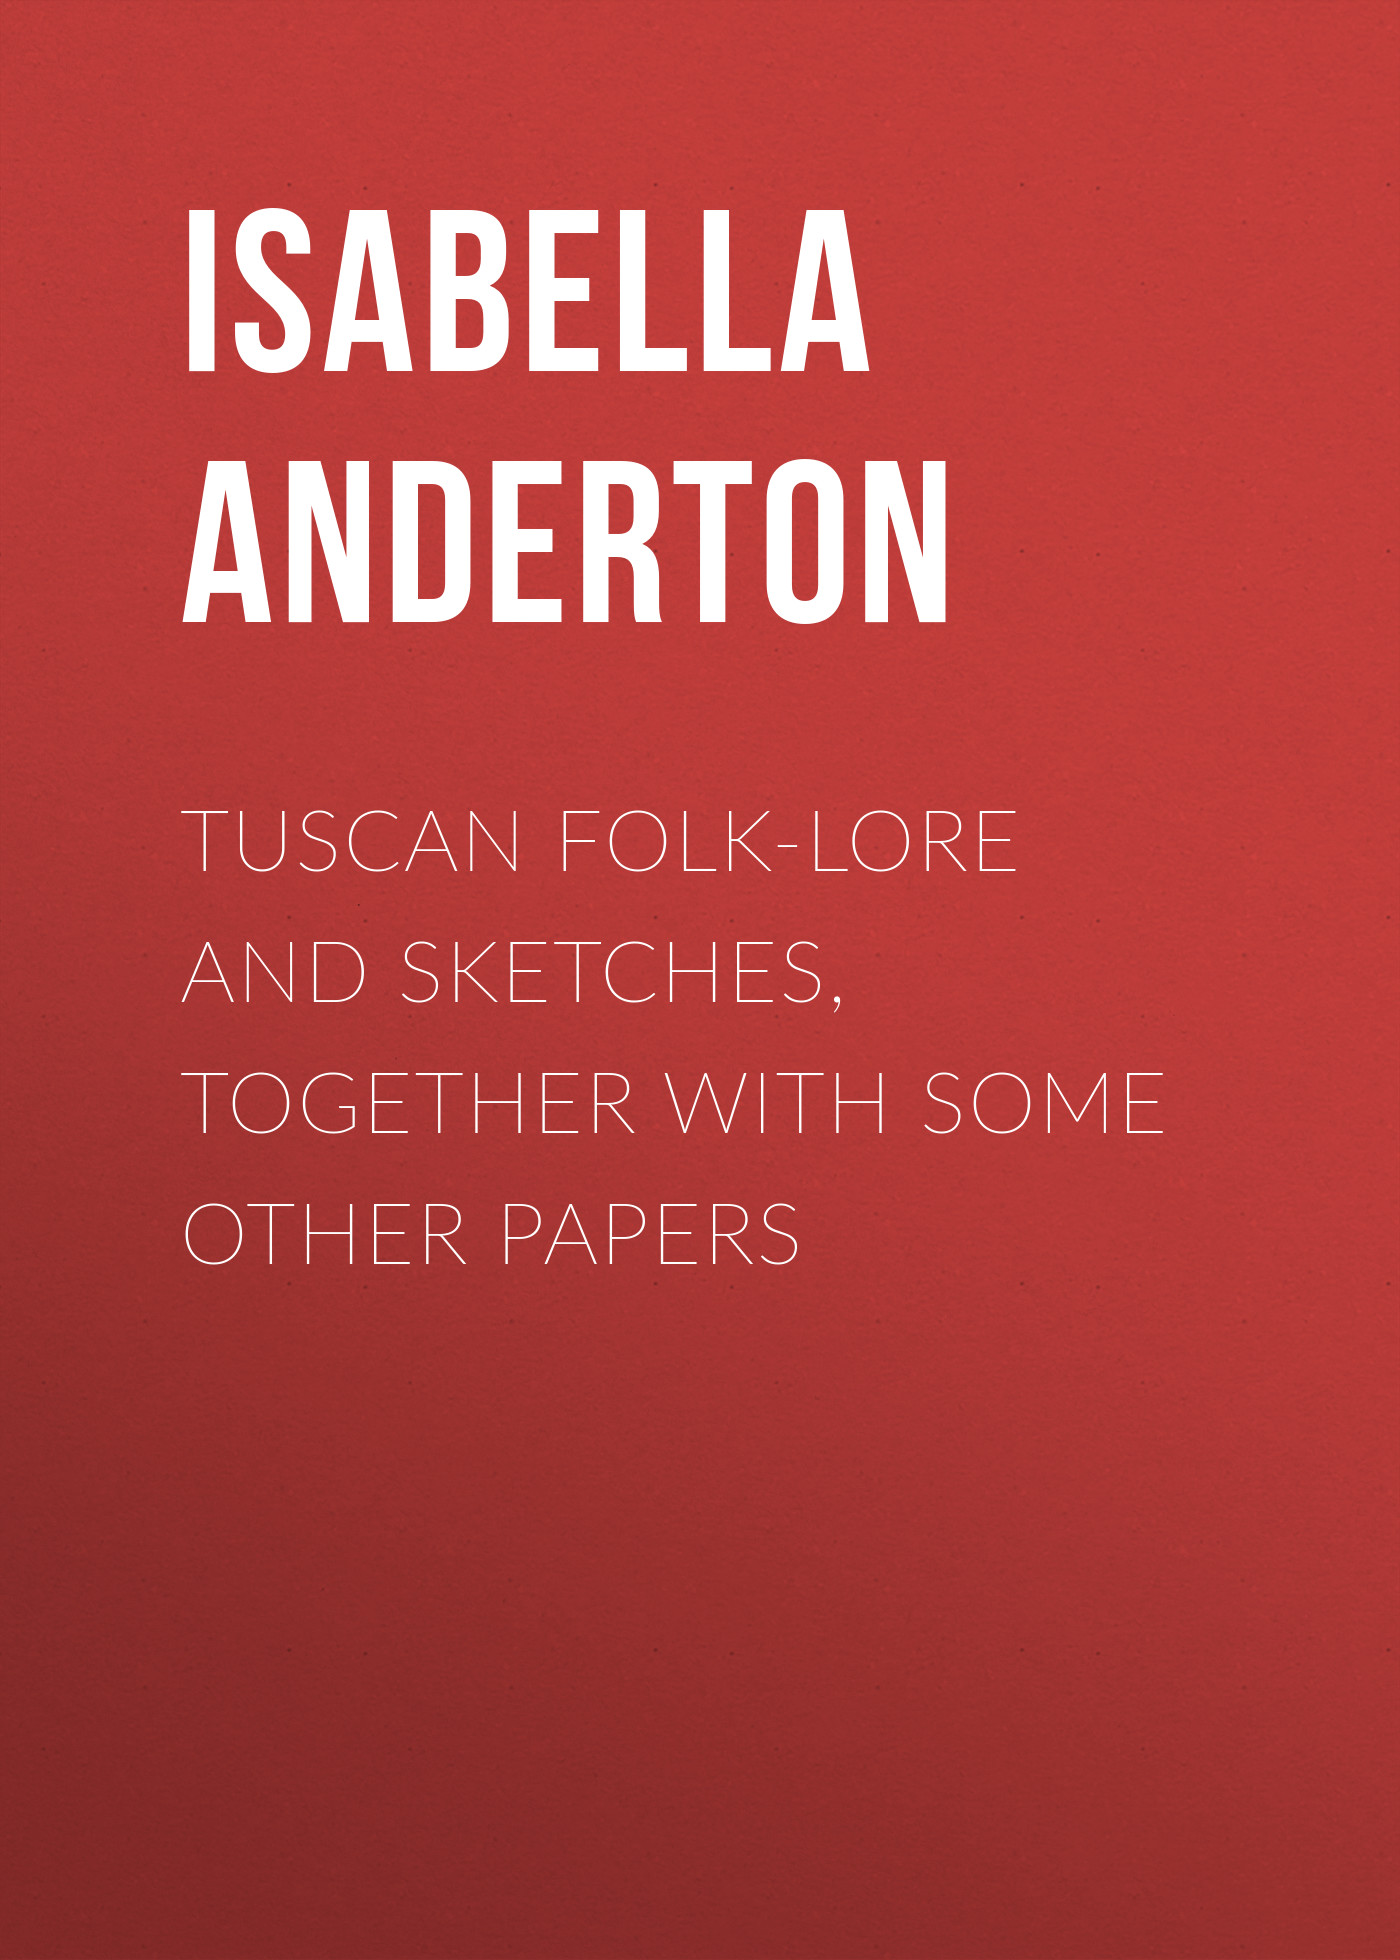 Фото - Anderton Isabella M. Tuscan folk-lore and sketches, together with some other papers j b mozley lectures and other theological papers